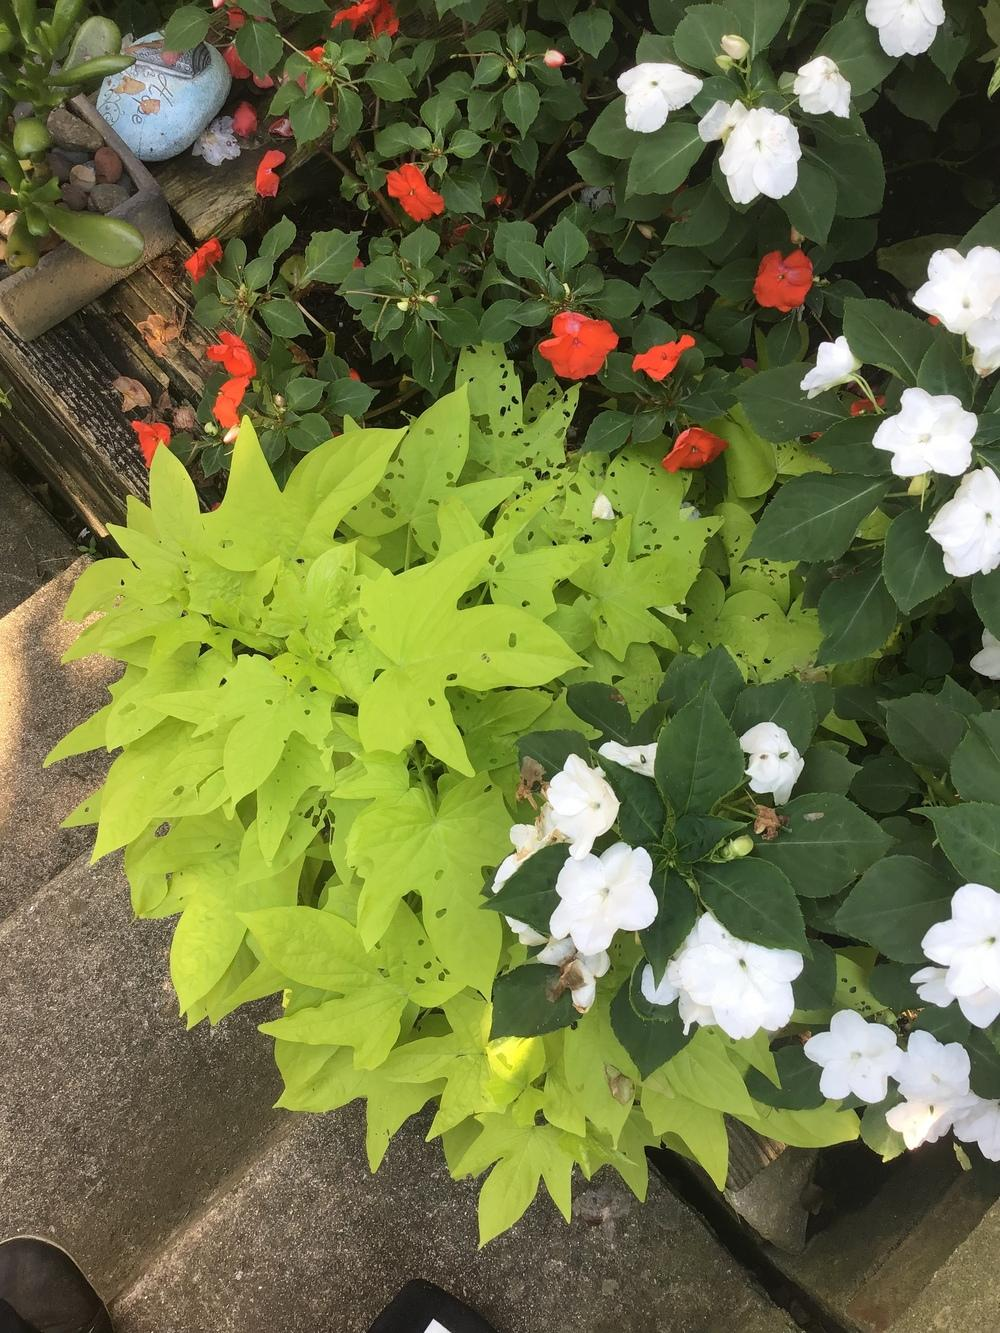 Pests And Diseases Forum My Sweet Potato Vines Are Now Swiss Cheese Vines Garden Org